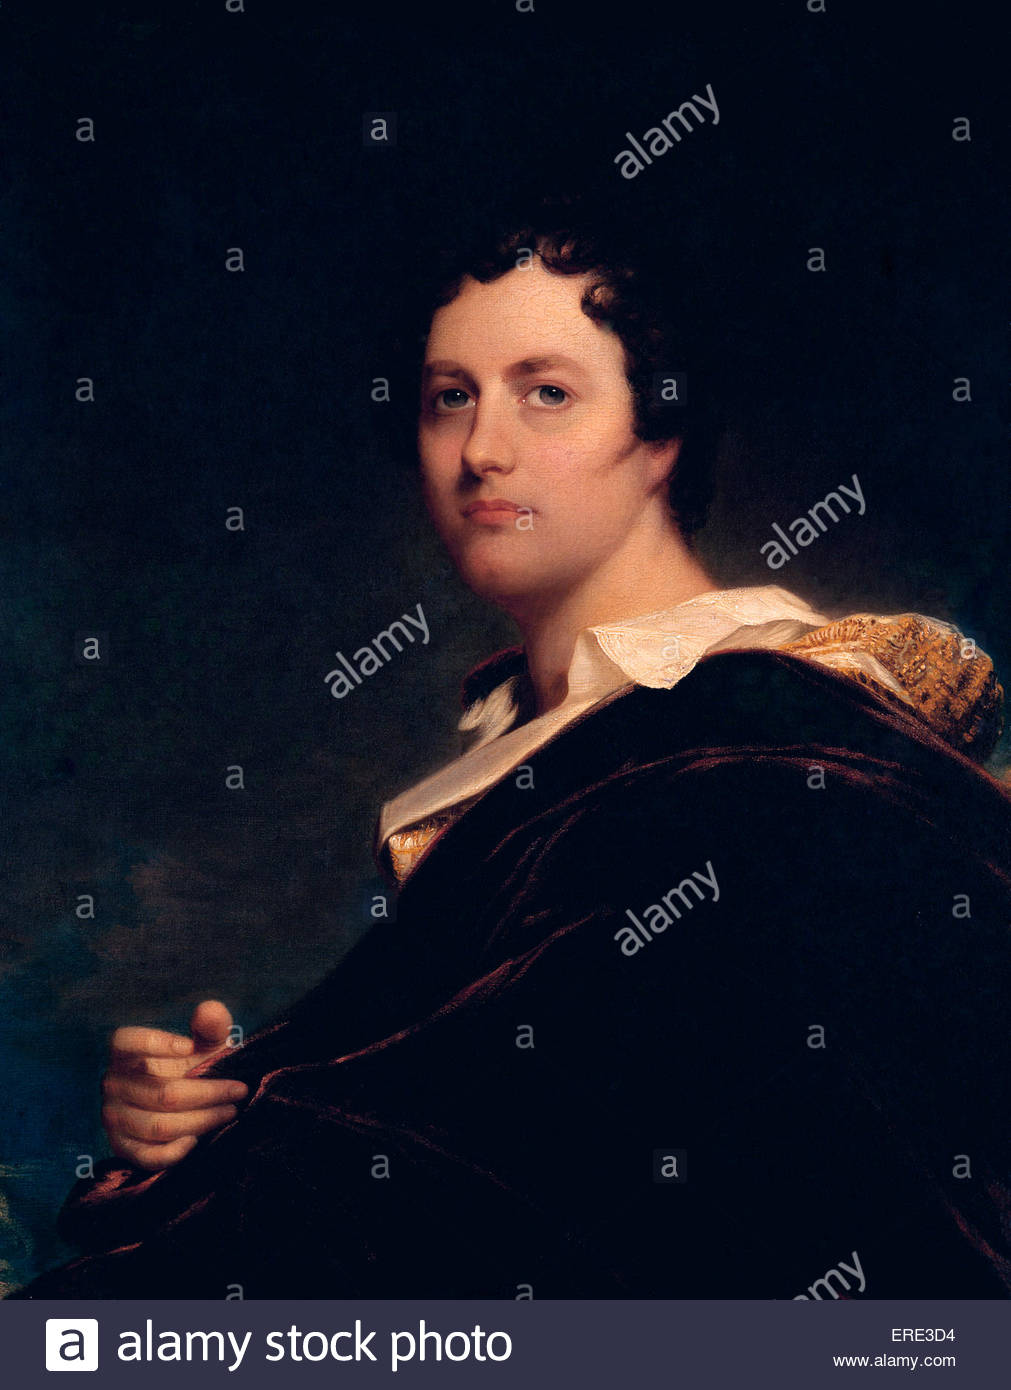 Lord Byron, pittura ad olio da William Edward West, 1822. George Gordon Byron, 6 Lord Byron di Rochdale, poeta inglese: Immagini Stock